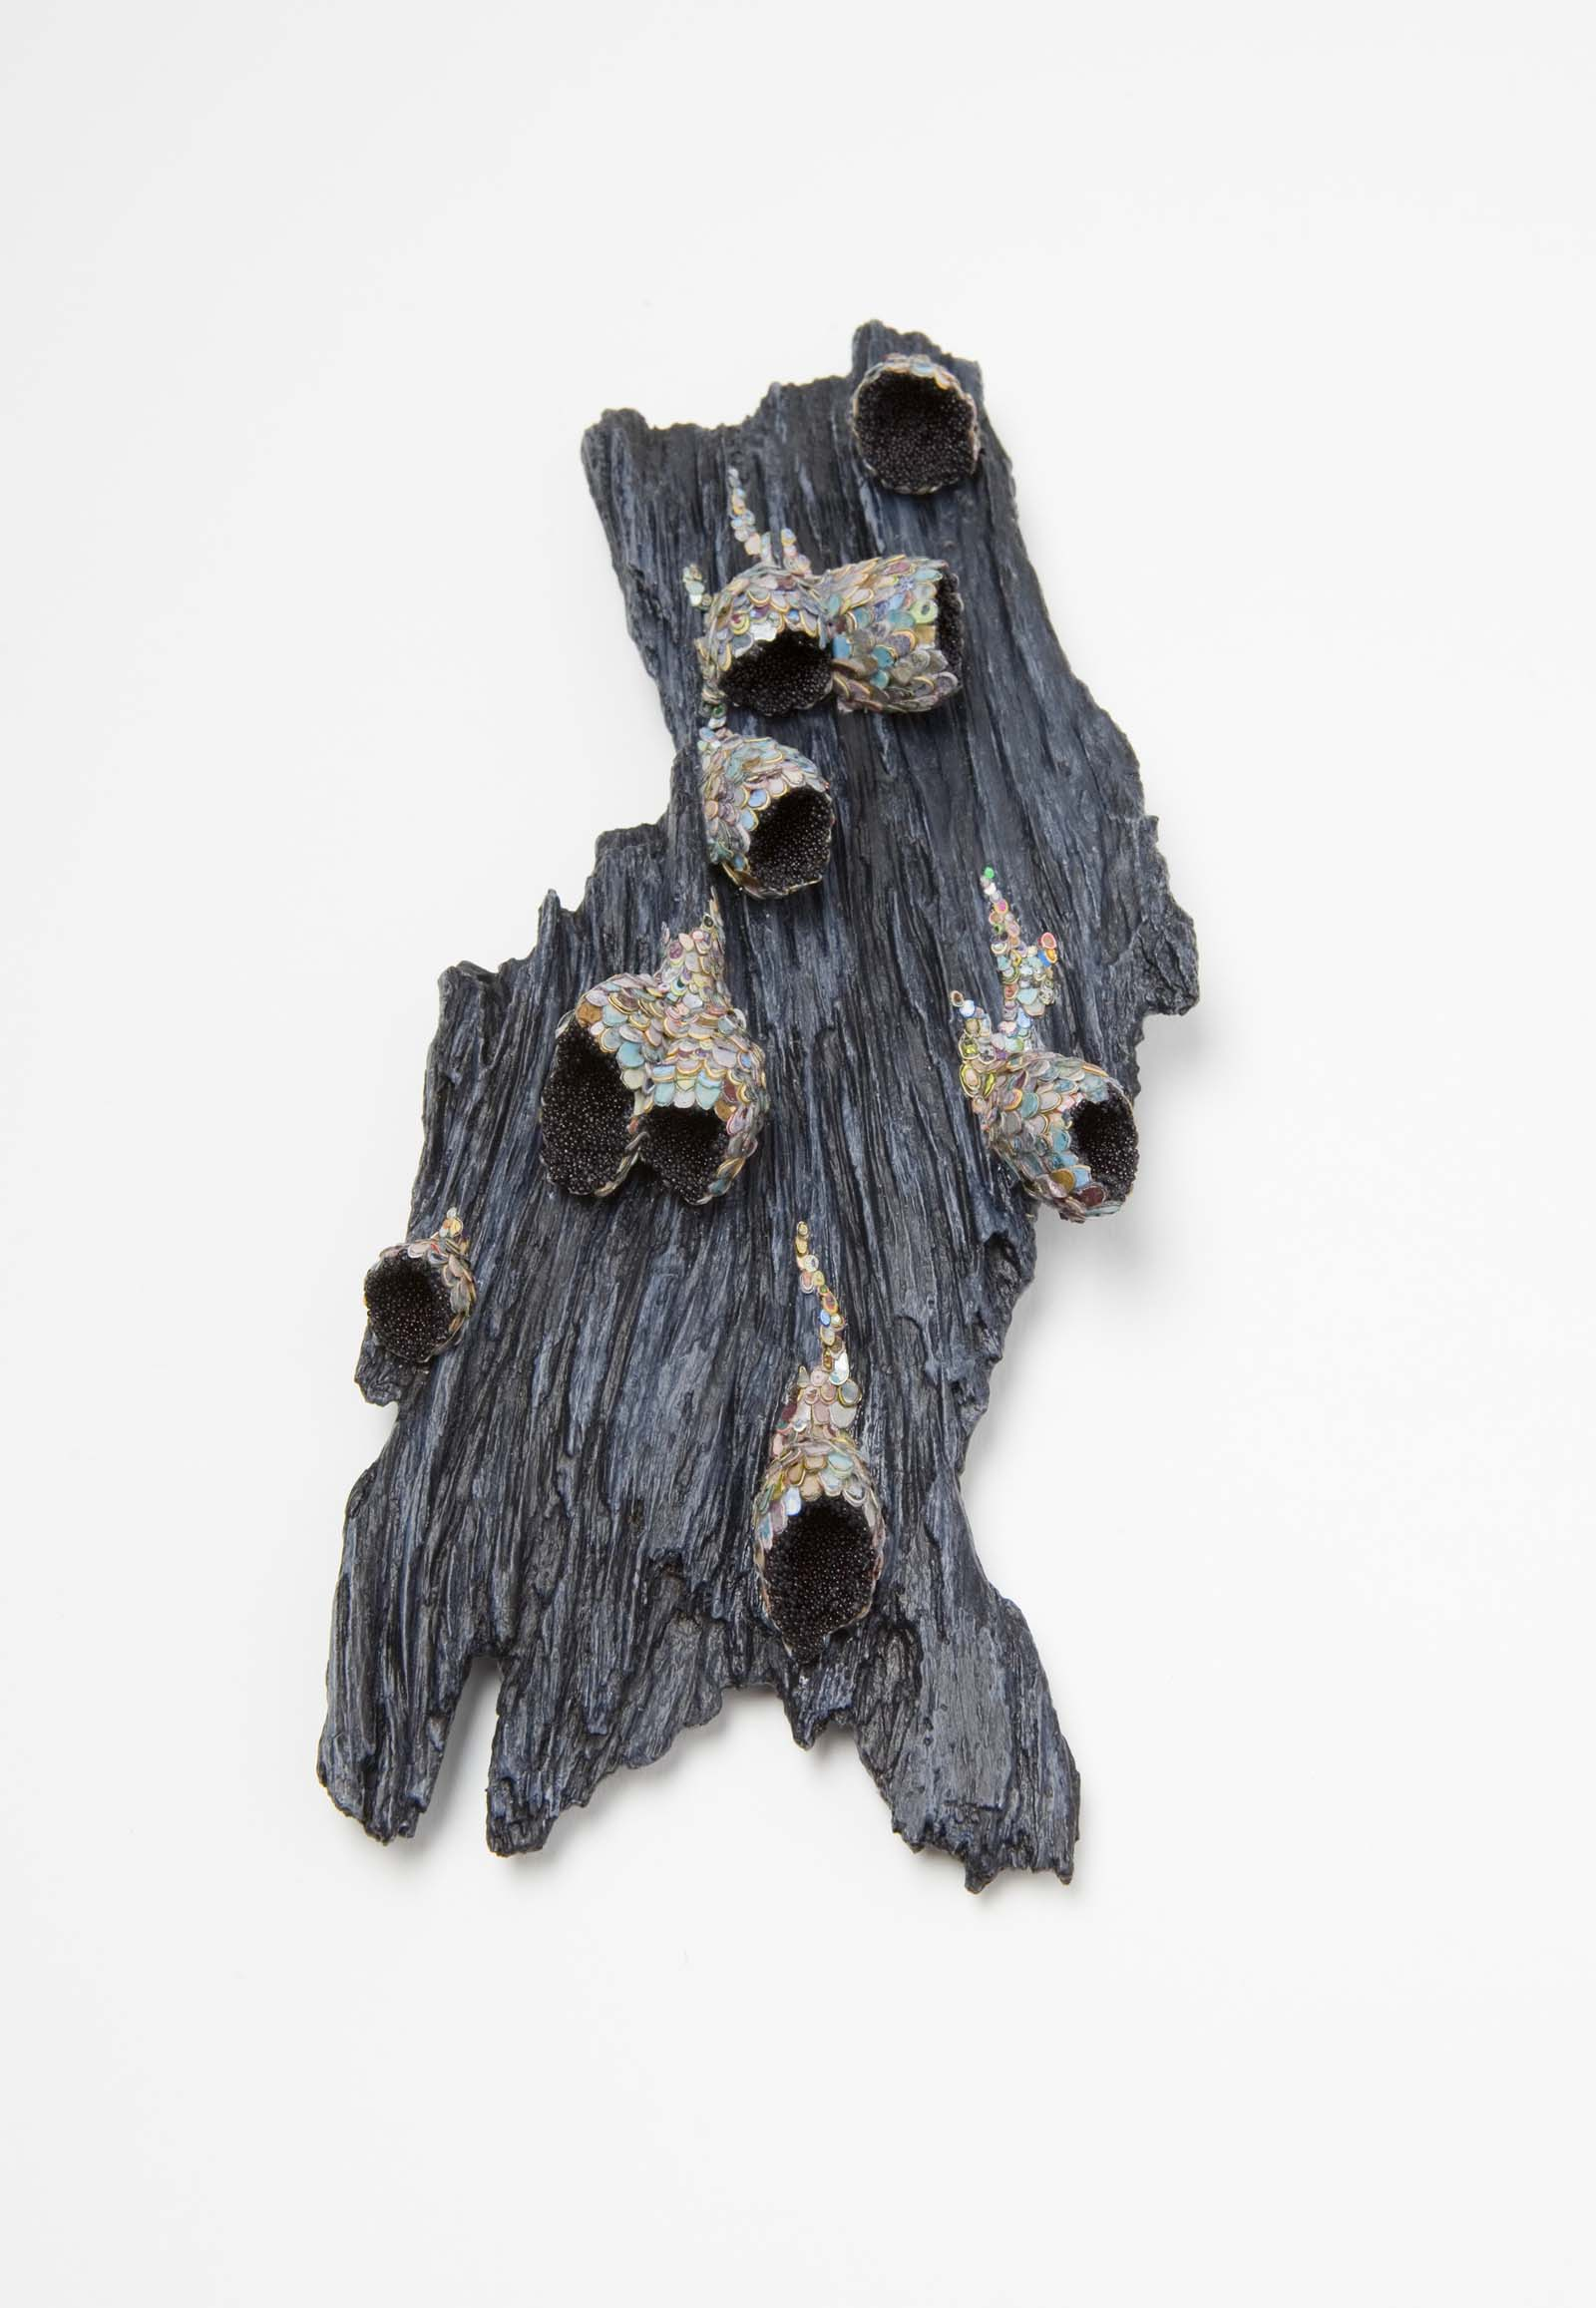 """Symbiosis 1"" I Brooch, 2015 I Wood, graffiti, almond shells, glass, silver, stainless steel, paint I Photo: Mirei Takeuchi"